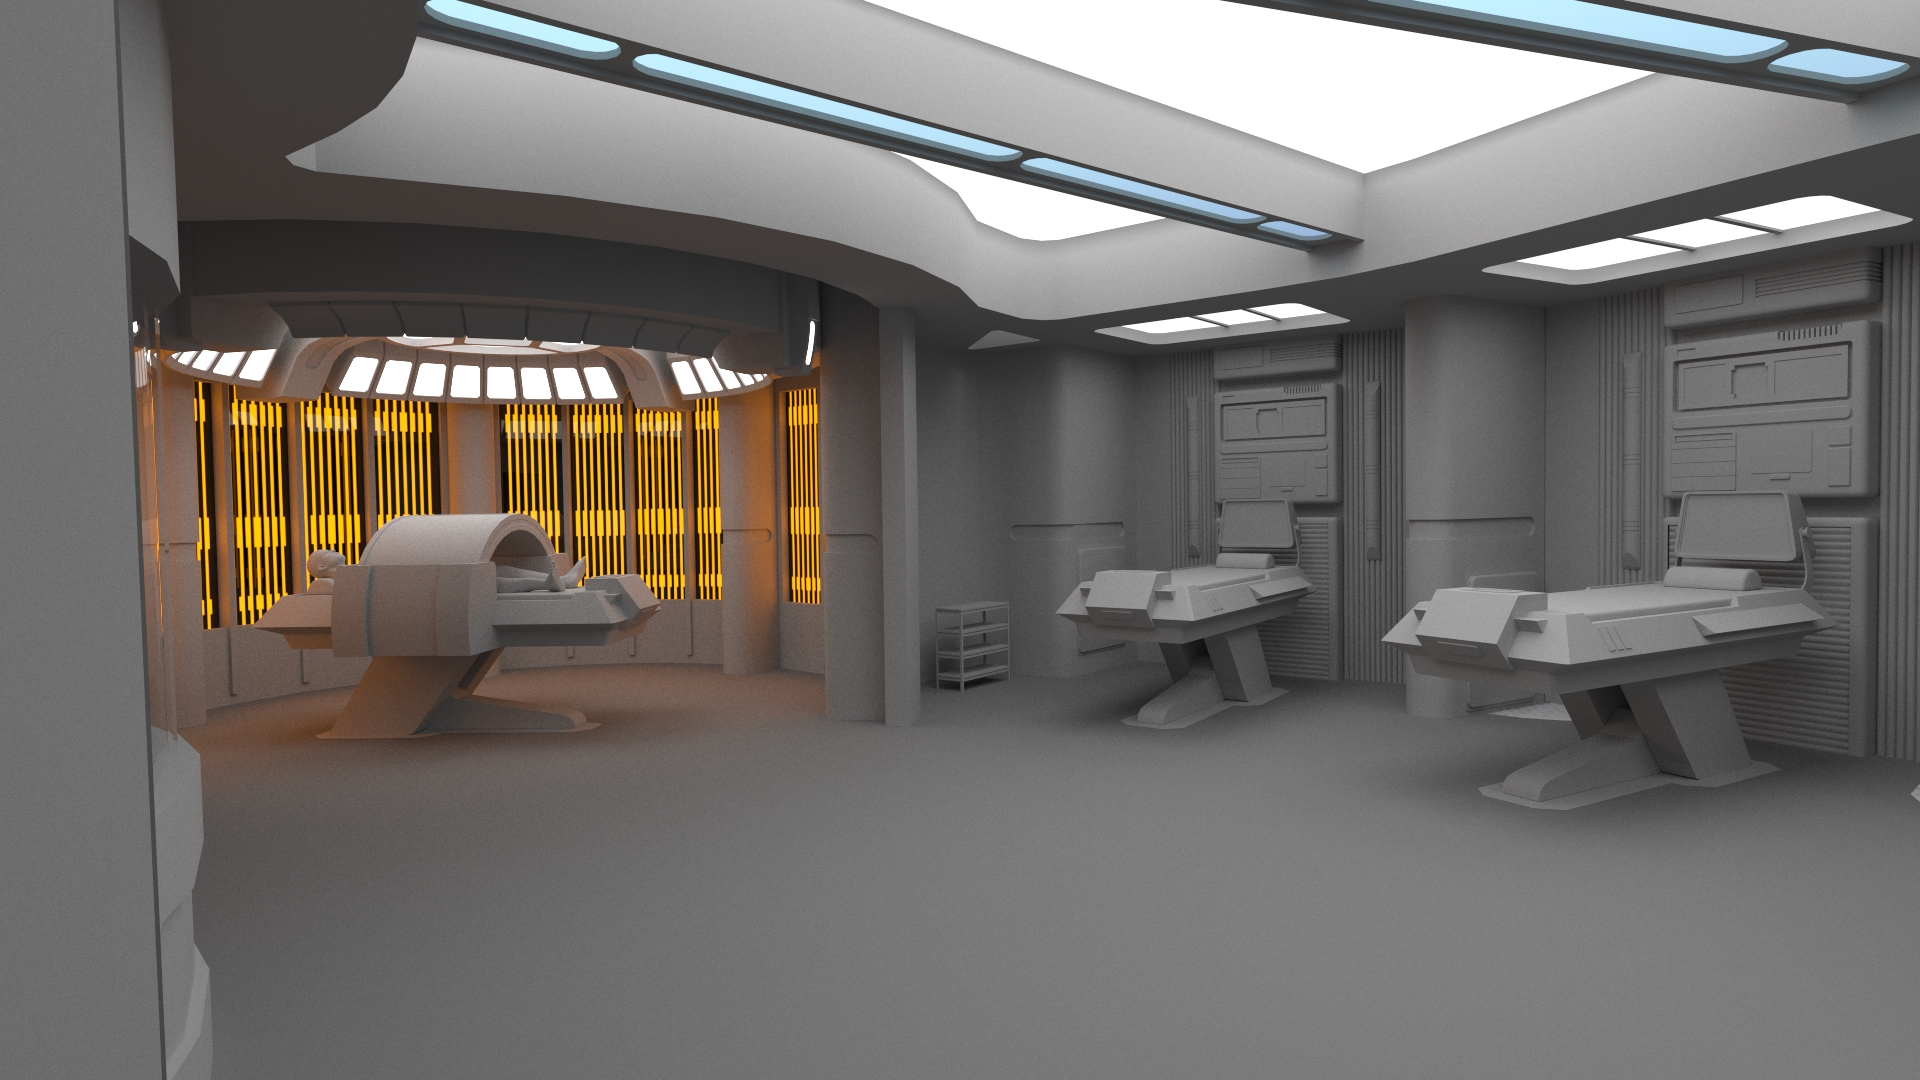 http://media.indiedb.com/images/games/1/29/28586/sickbay_ceiling_wip14.jpg